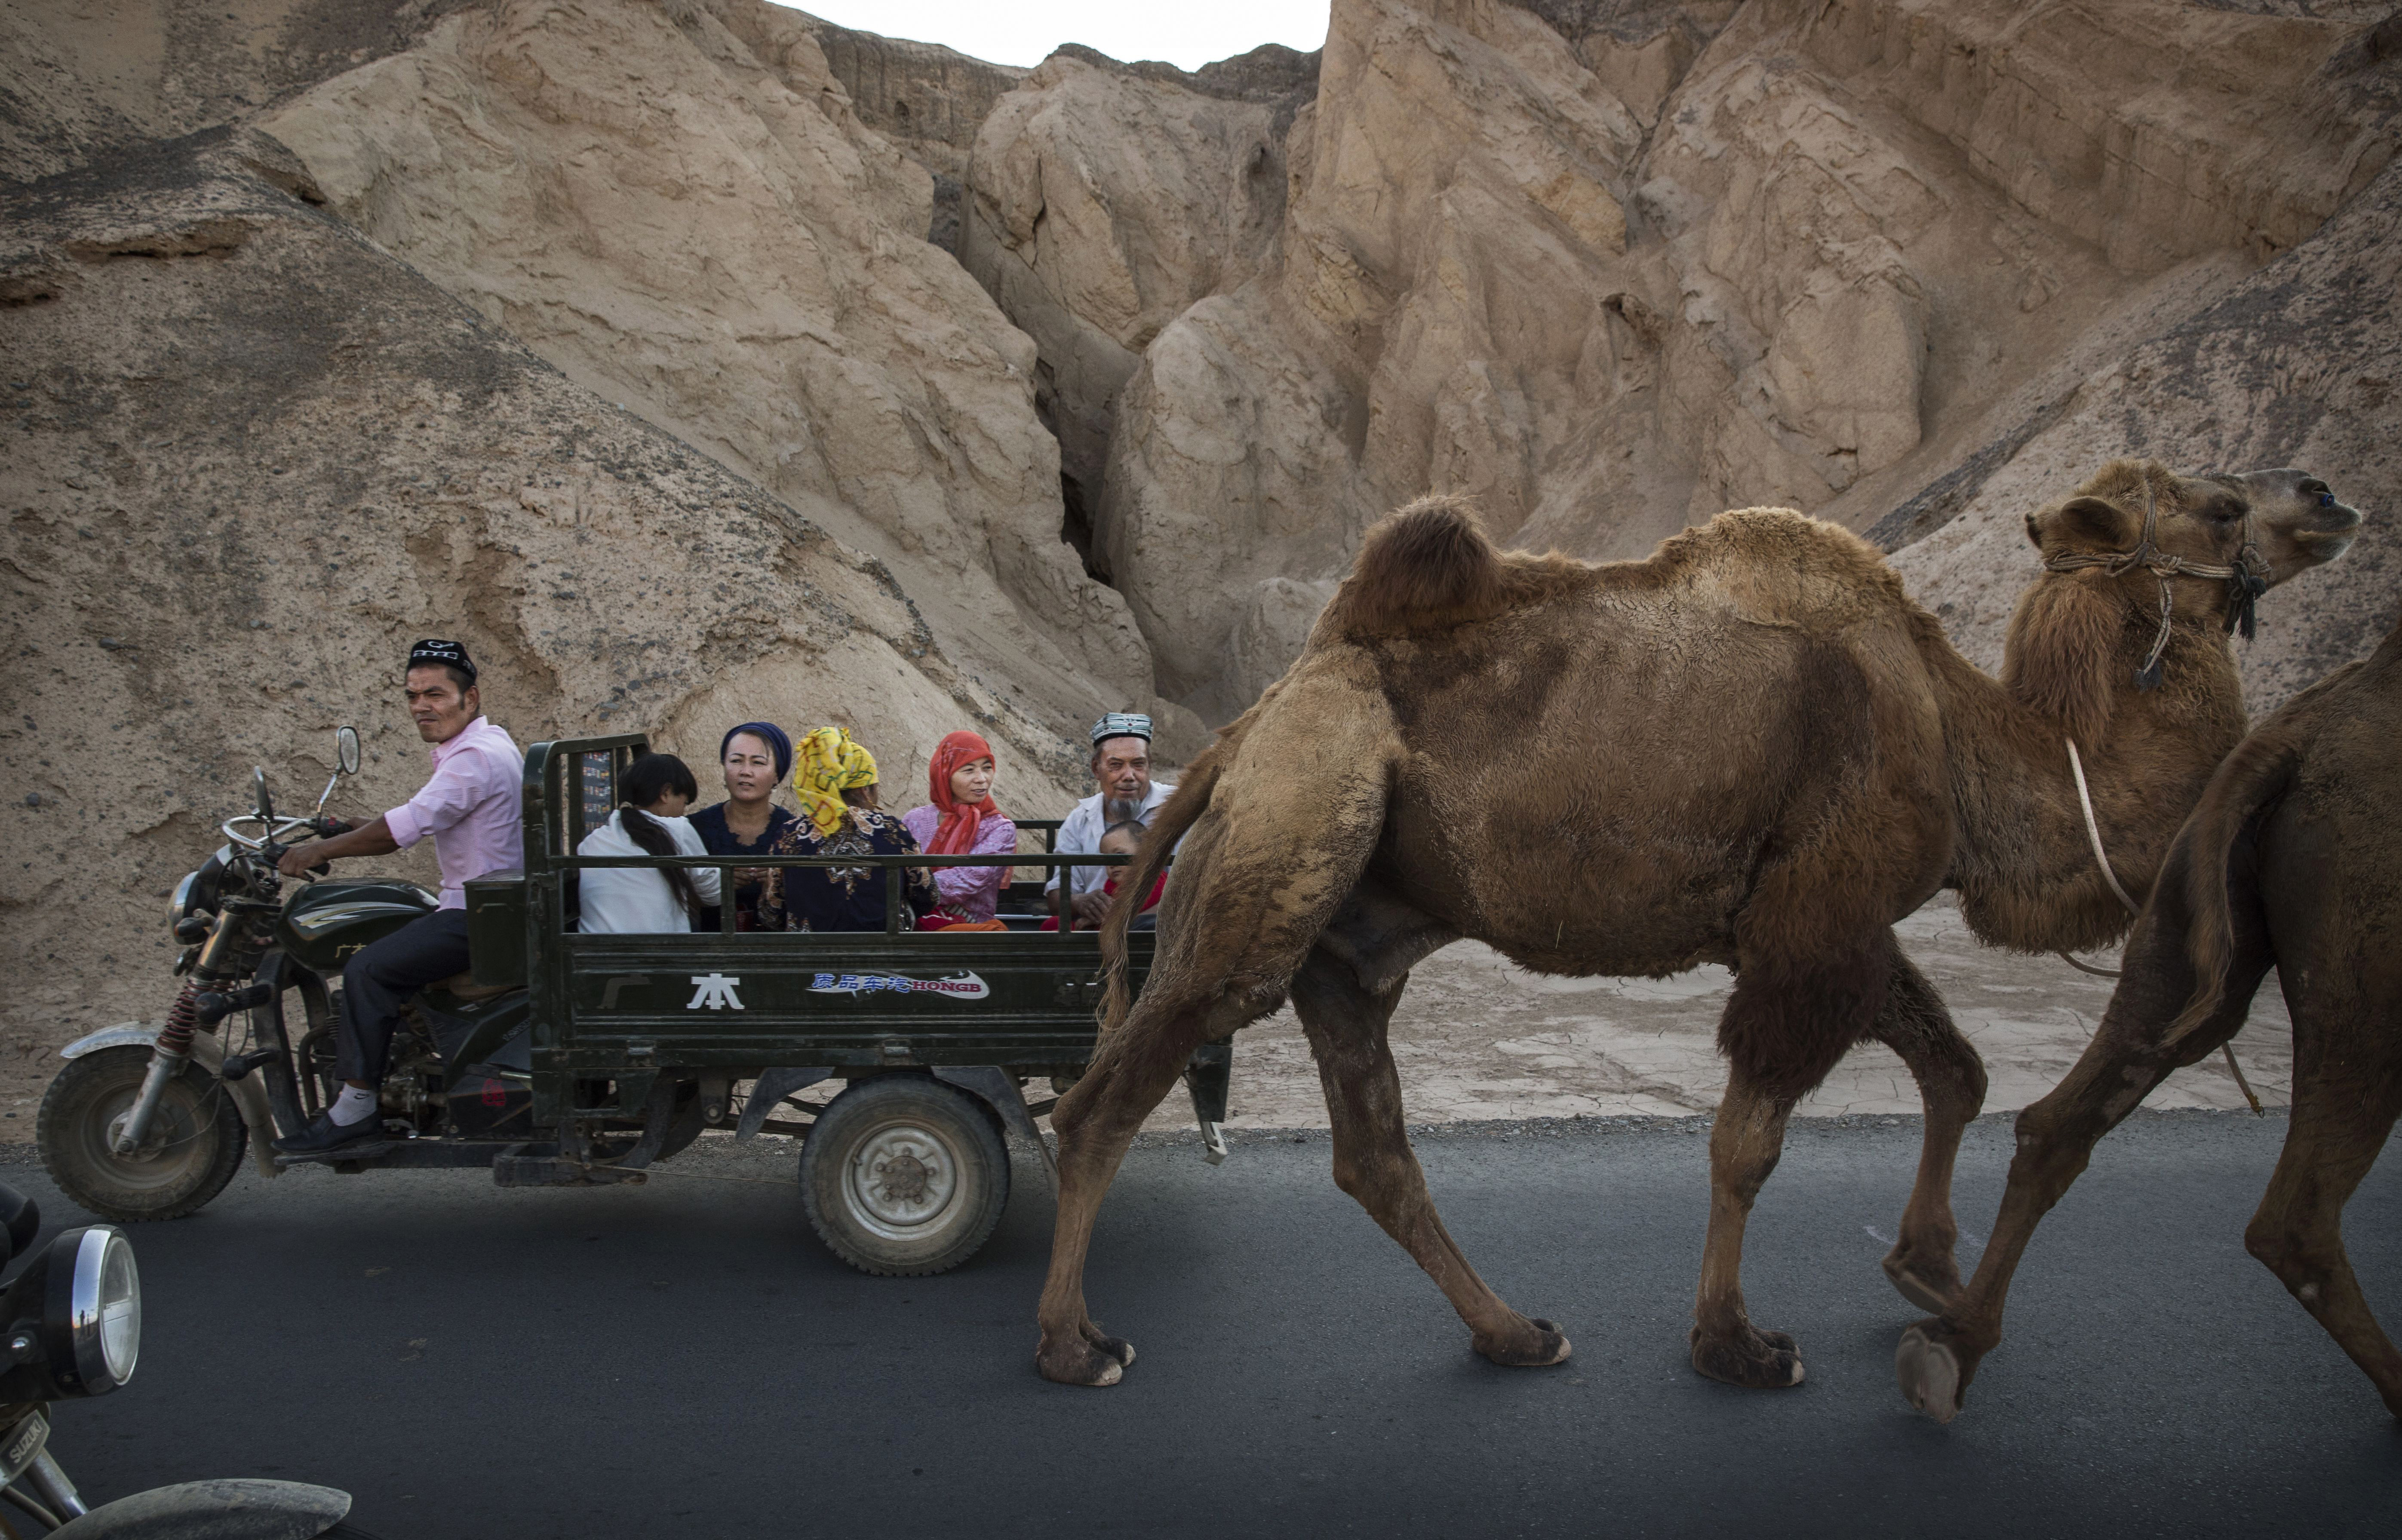 A Uighur family rides past a camel in Turpan county, in China's autonomous region of Xinjiang, on Sept. 12, 2016